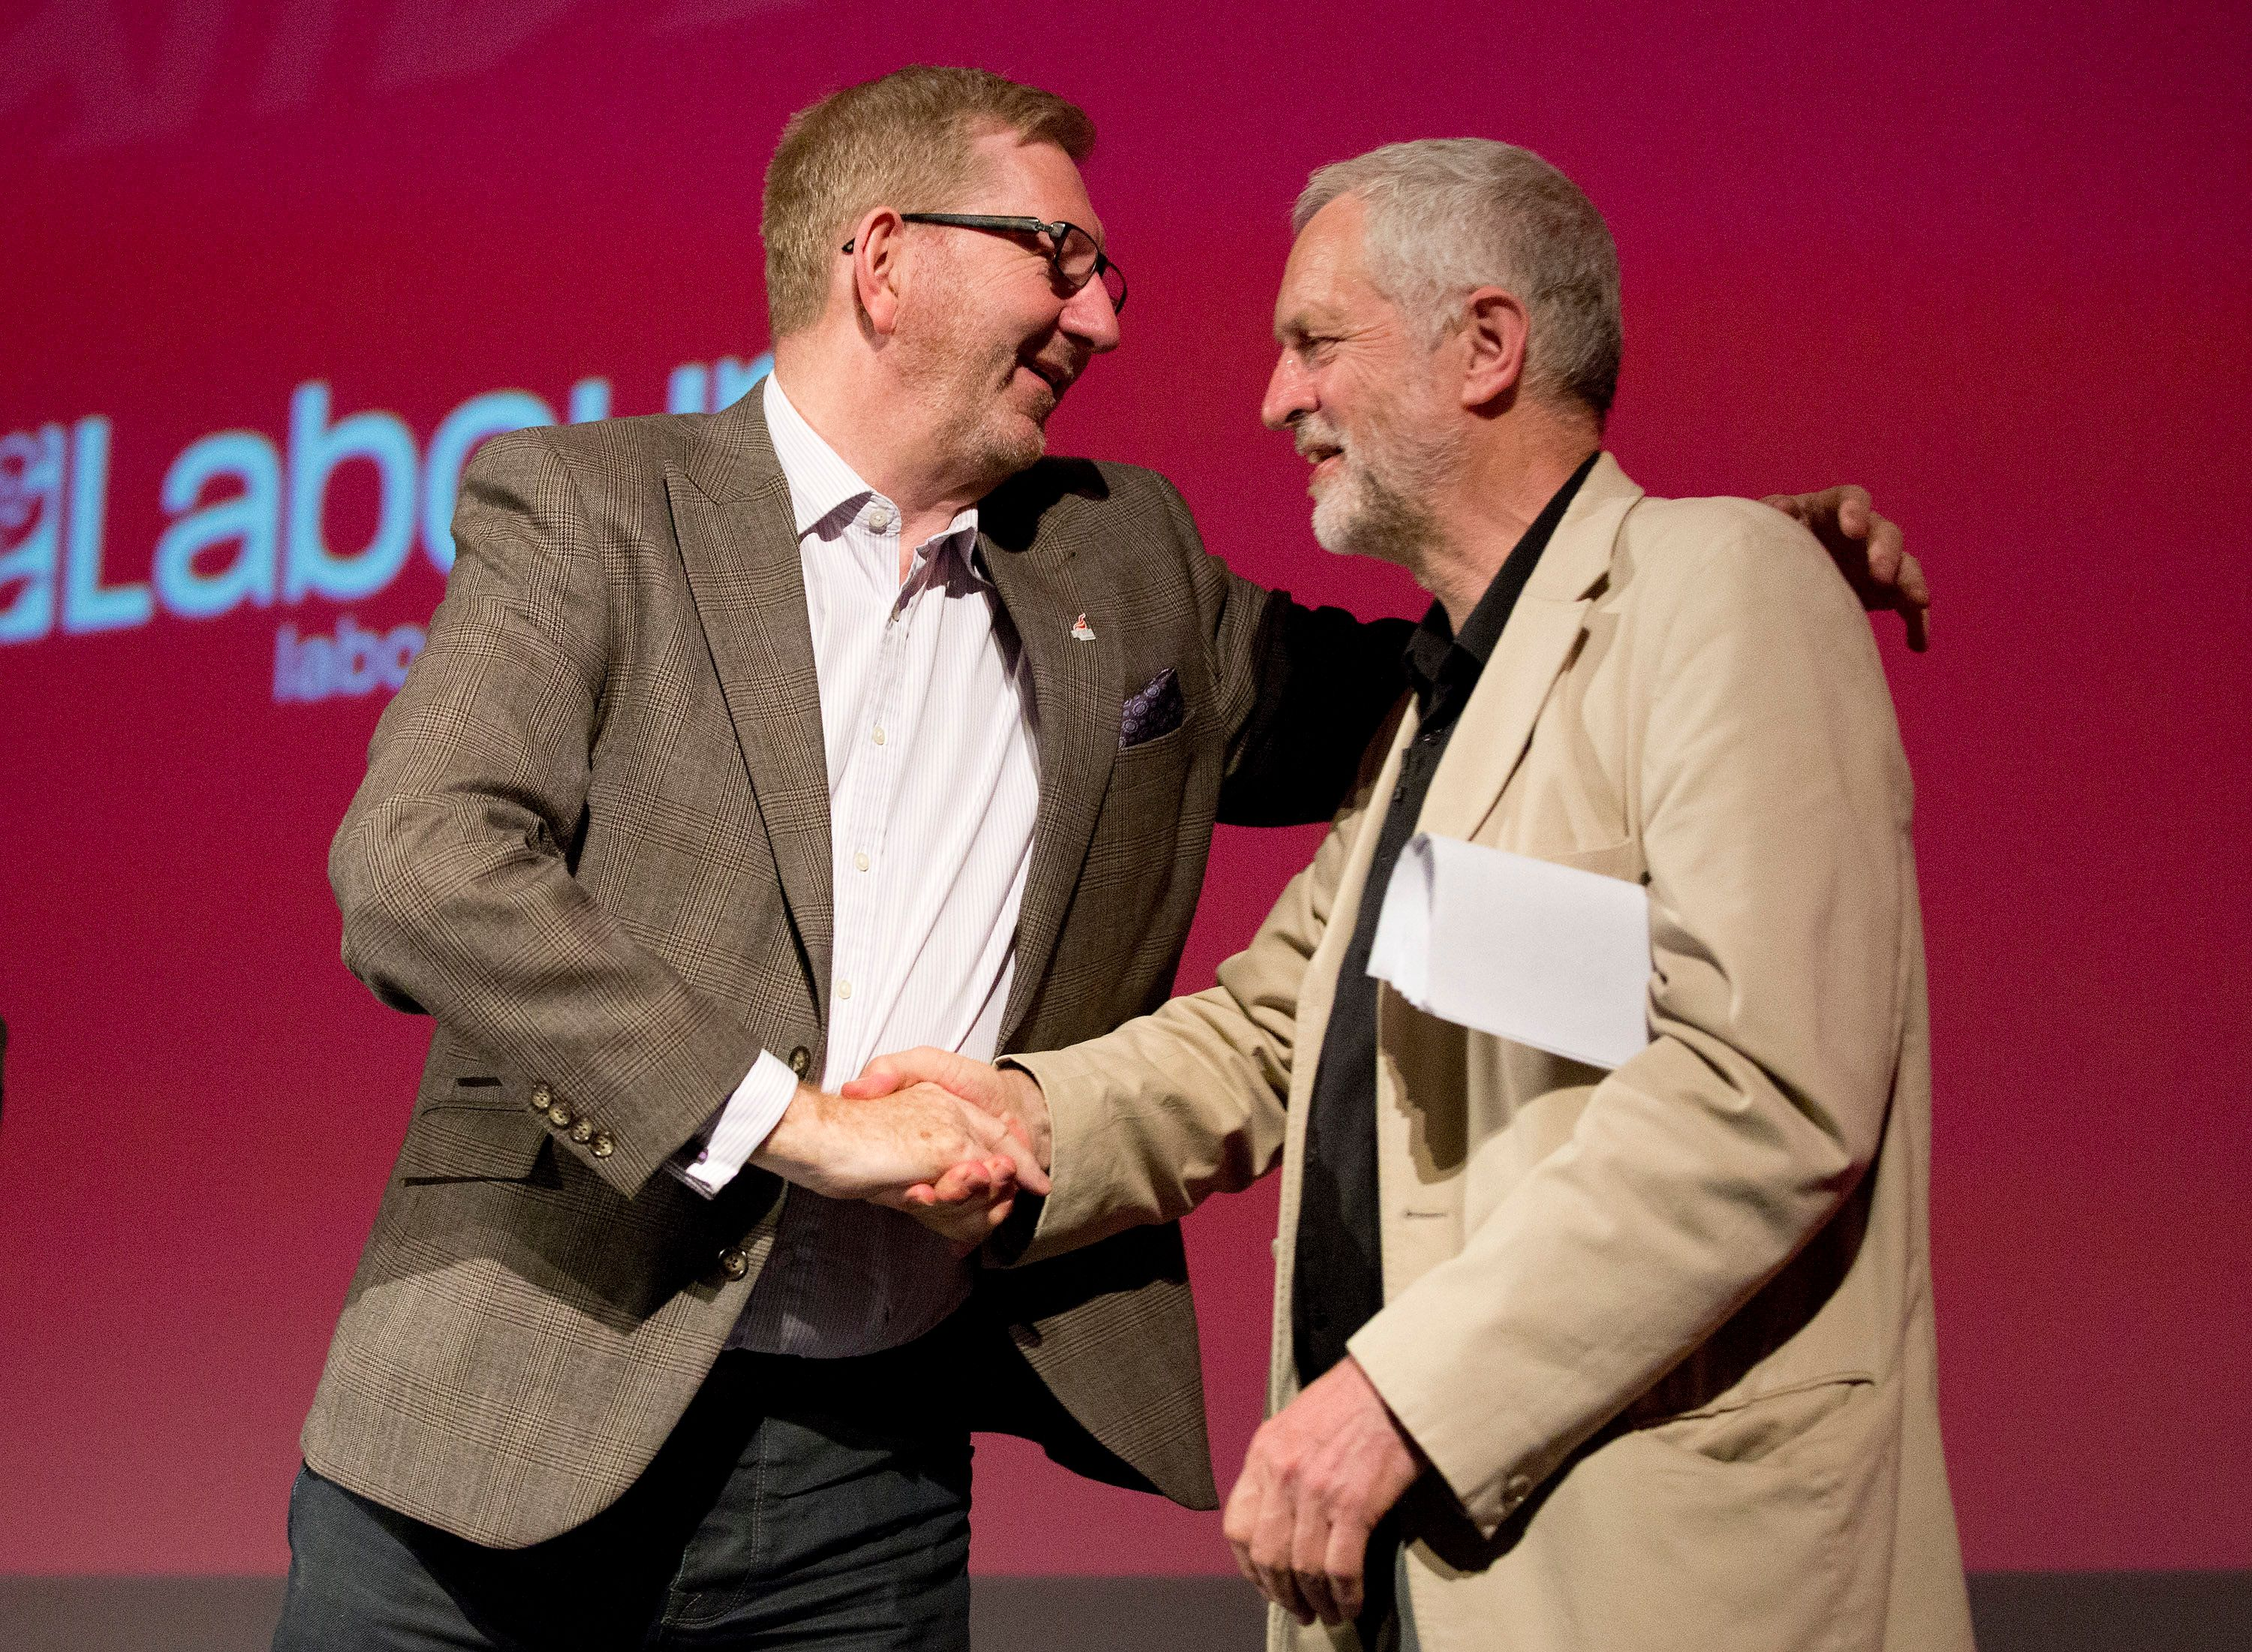 Corbyn Ally And Union Boss Len McCluskey Turns On Jewish Leaders After Wreath